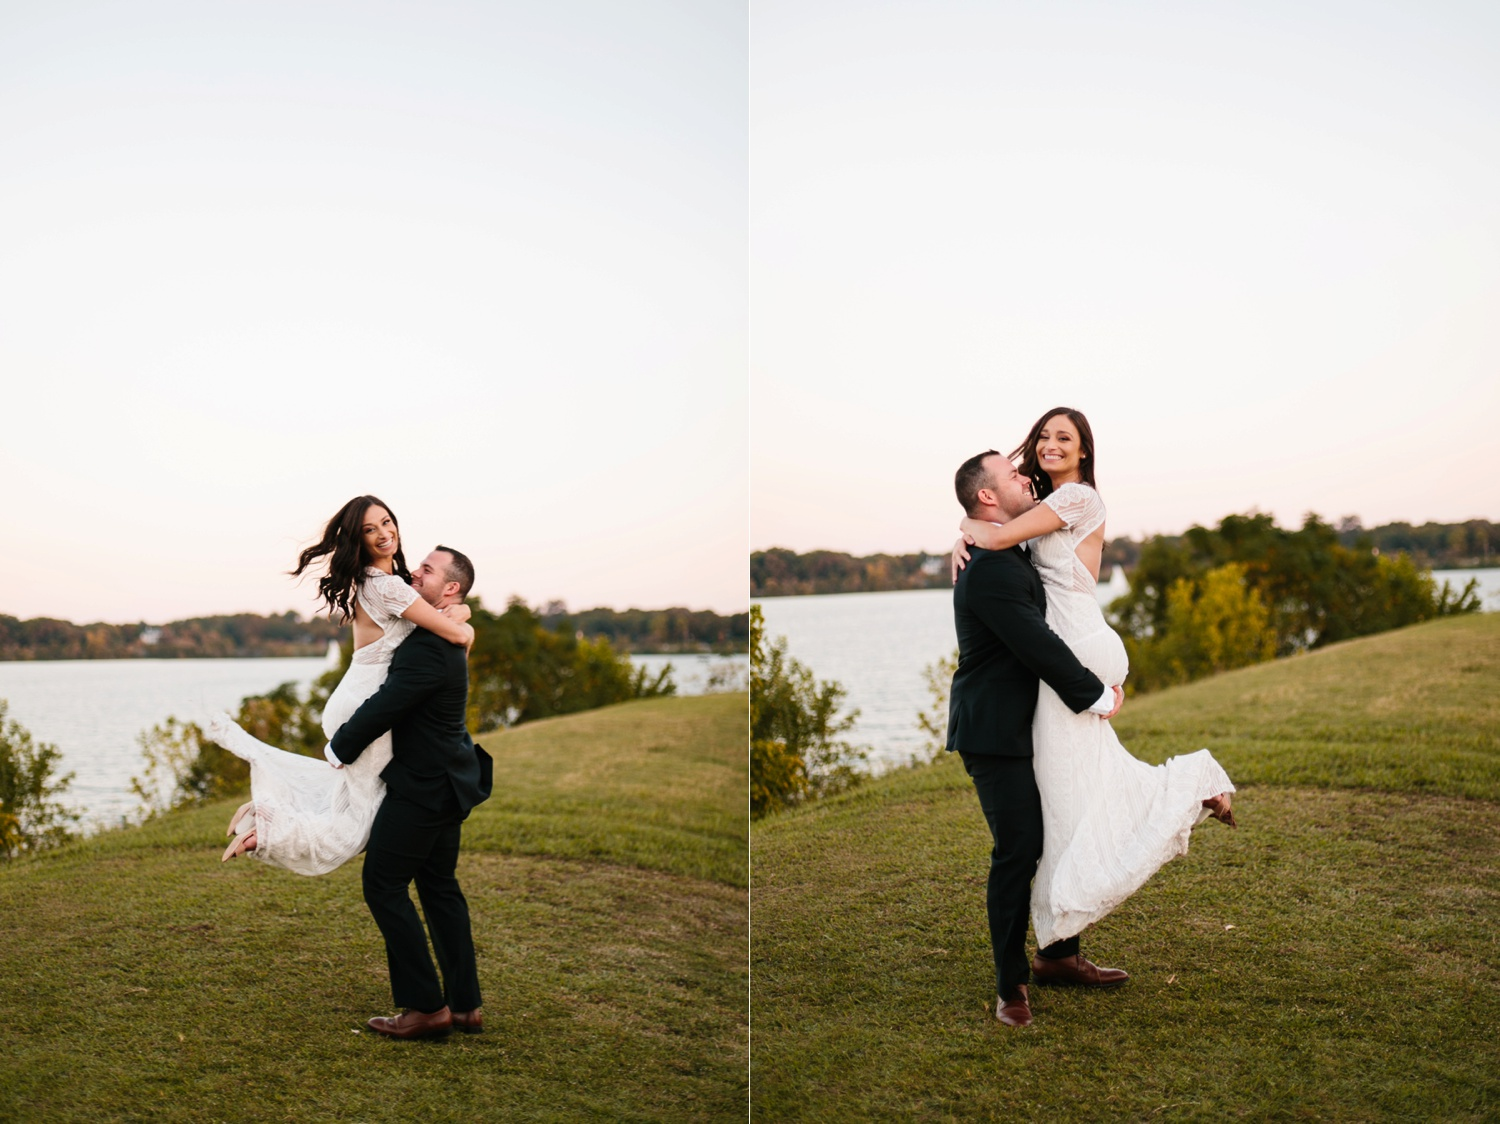 Kadee + Tyler | a raw, emotional wedding at the Filter Building on White Rock Lake in Dallas, TX by North Texas Wedding Photographer, Rachel Meagan Photography 182